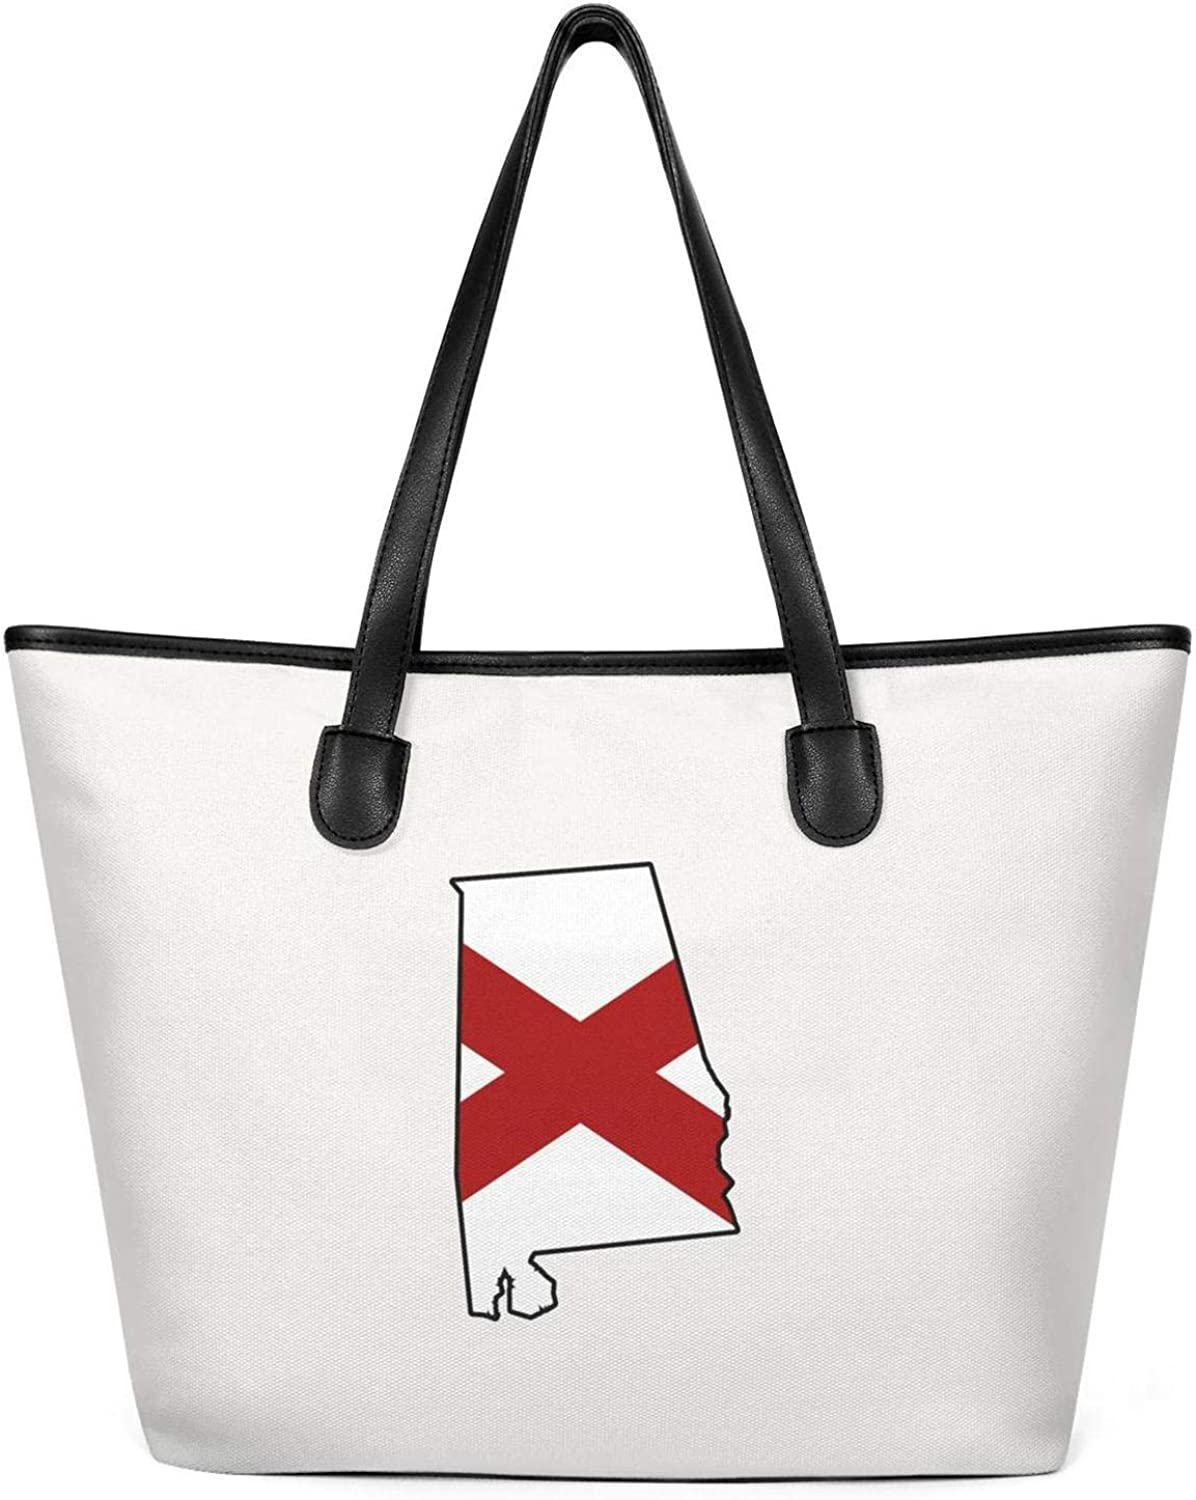 Alabama Flag Woman Canvas Tote Handbags Bags Personalized for Groceries Totes